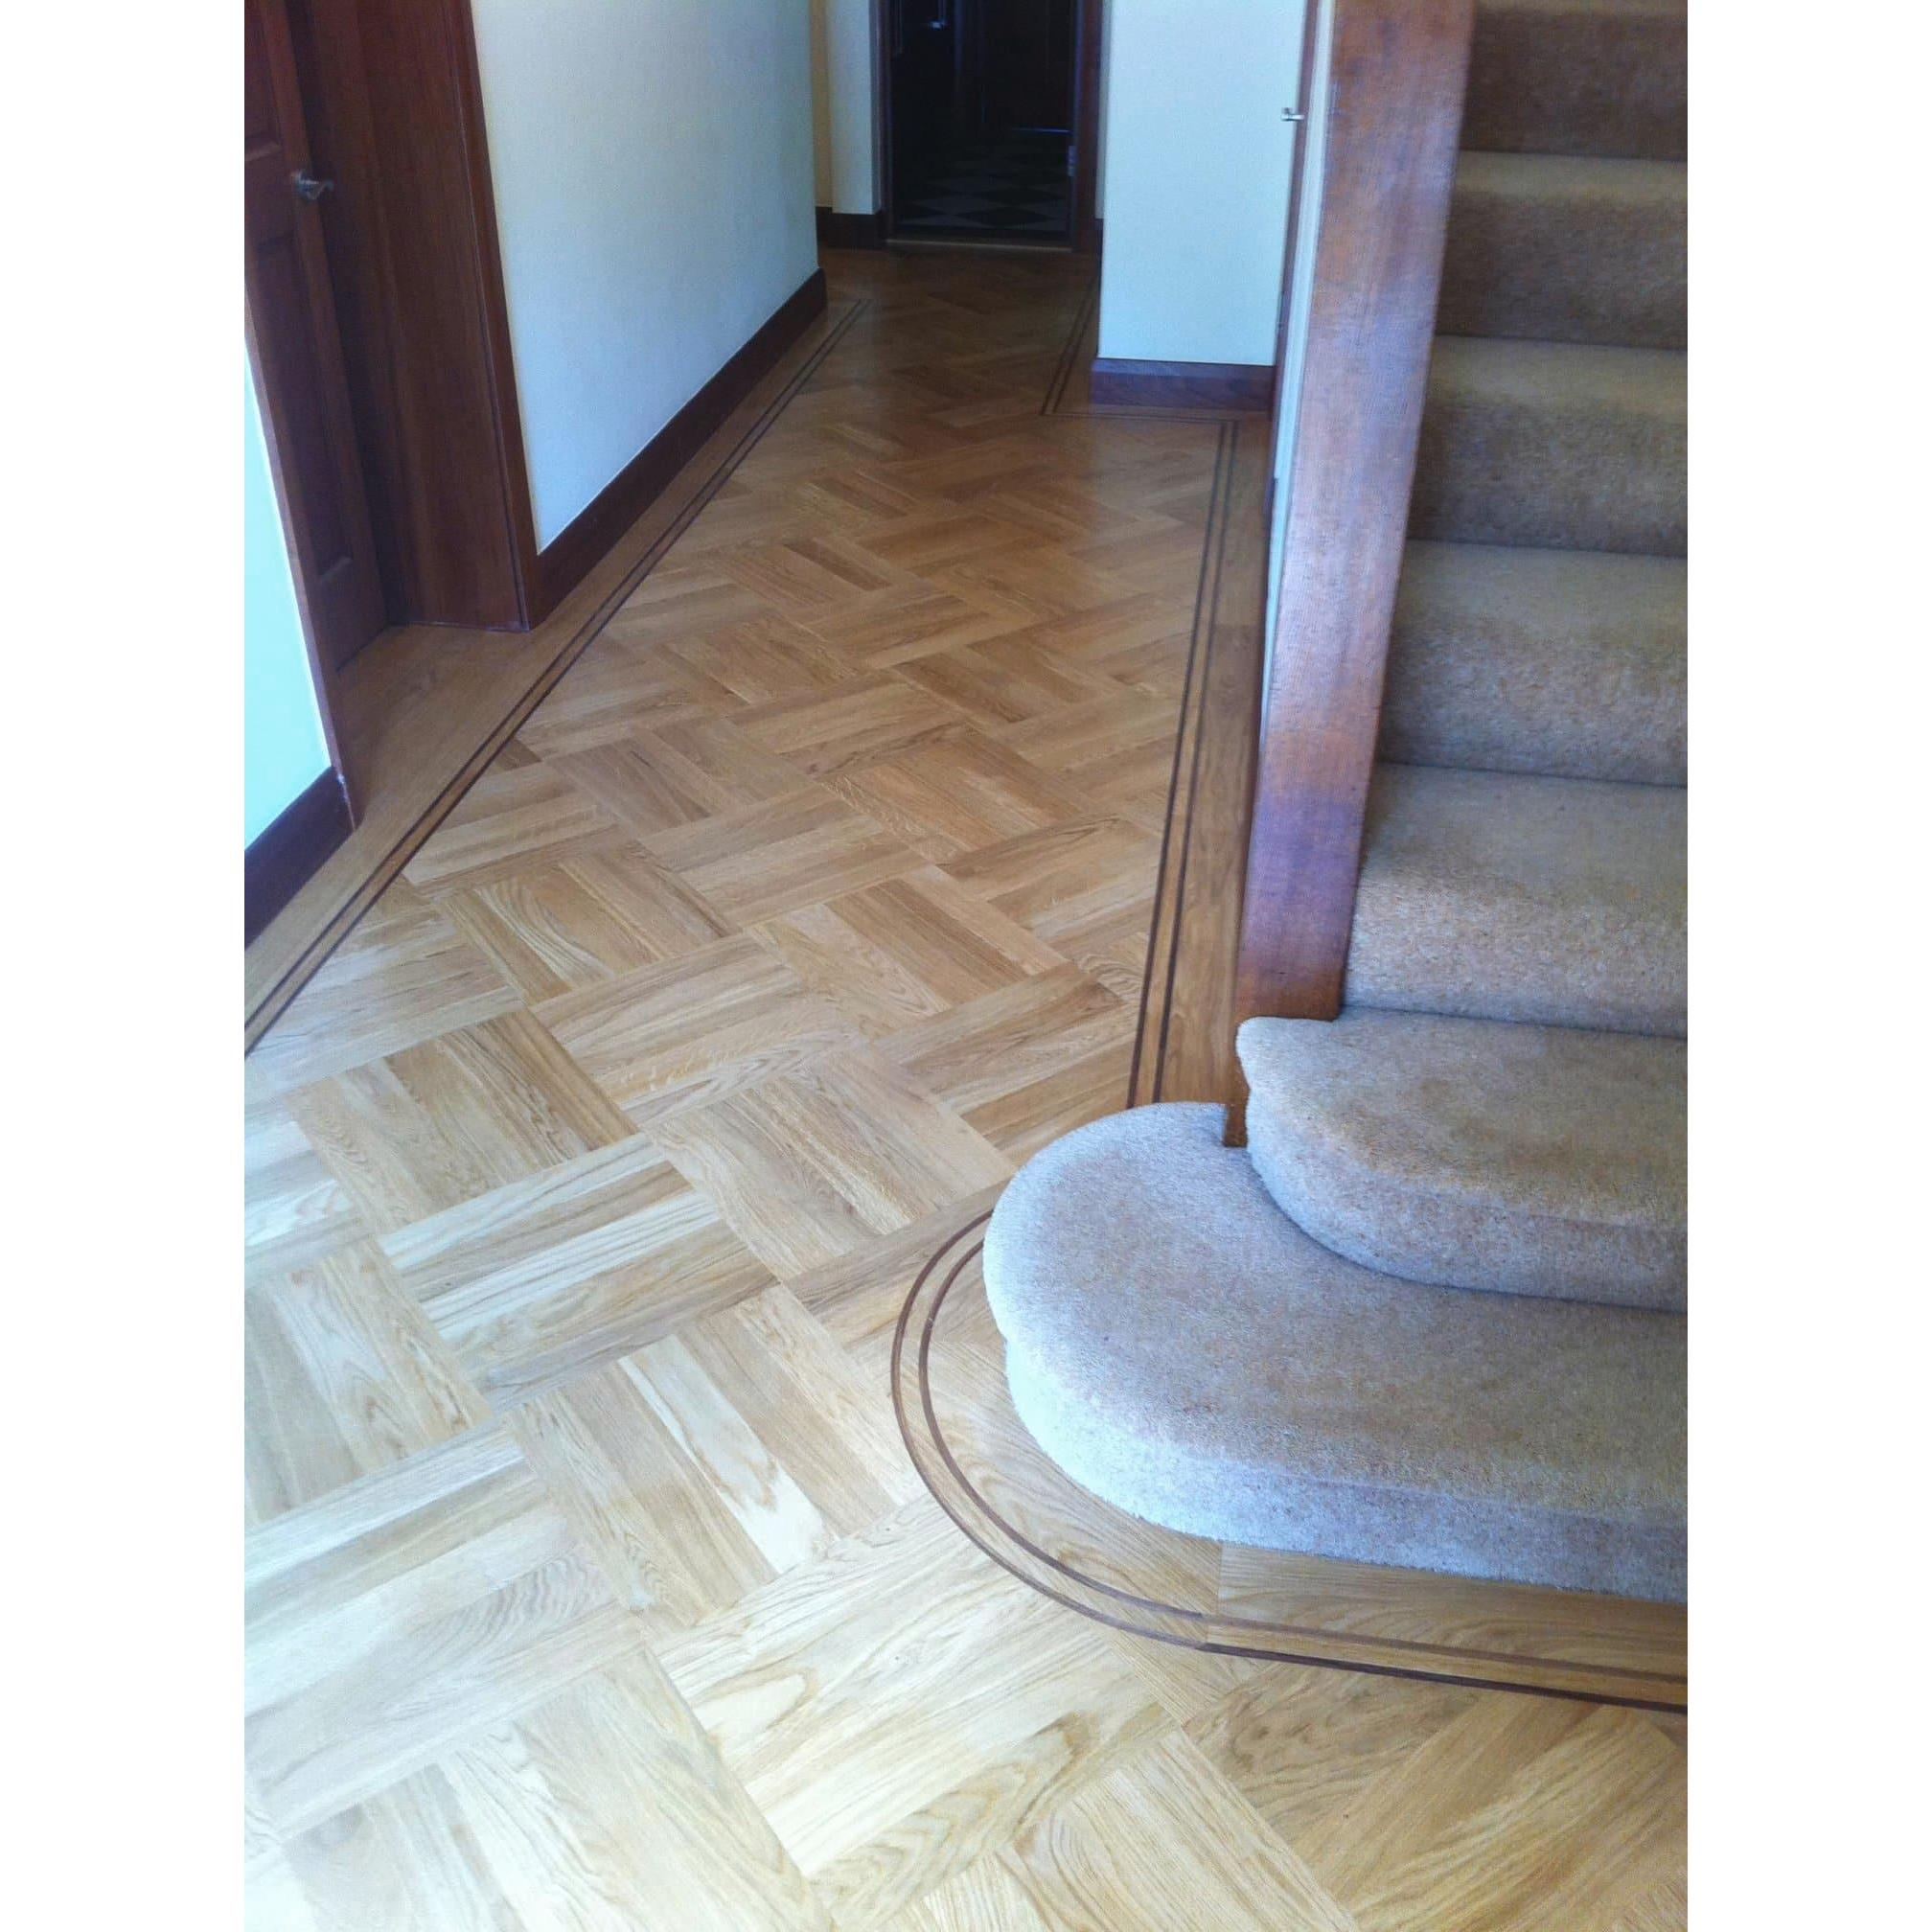 Parnell Floors (Traditional Wood Flooring) - Billericay, Essex CM12 0JP - 07780 671512 | ShowMeLocal.com